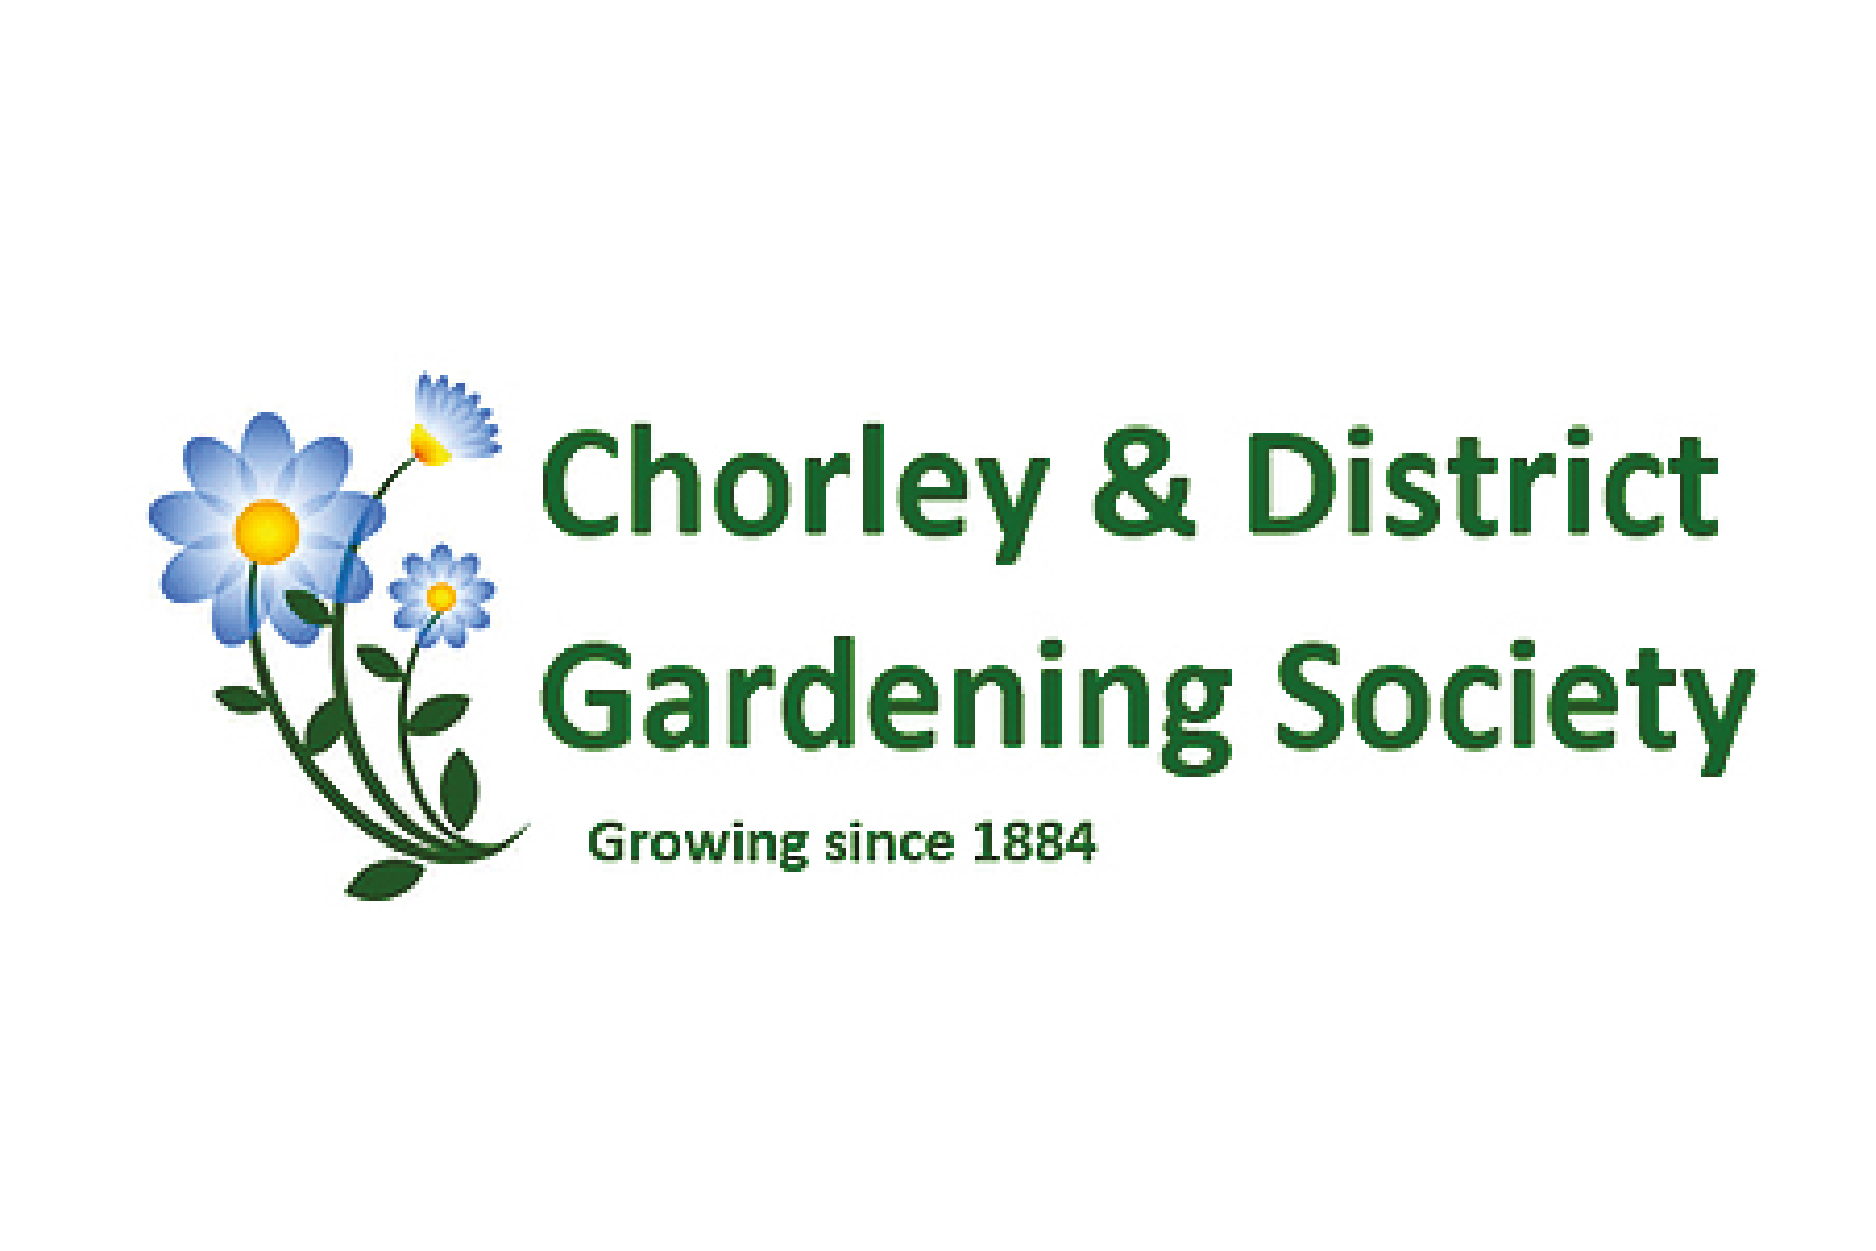 Chorley & District Gardening Society